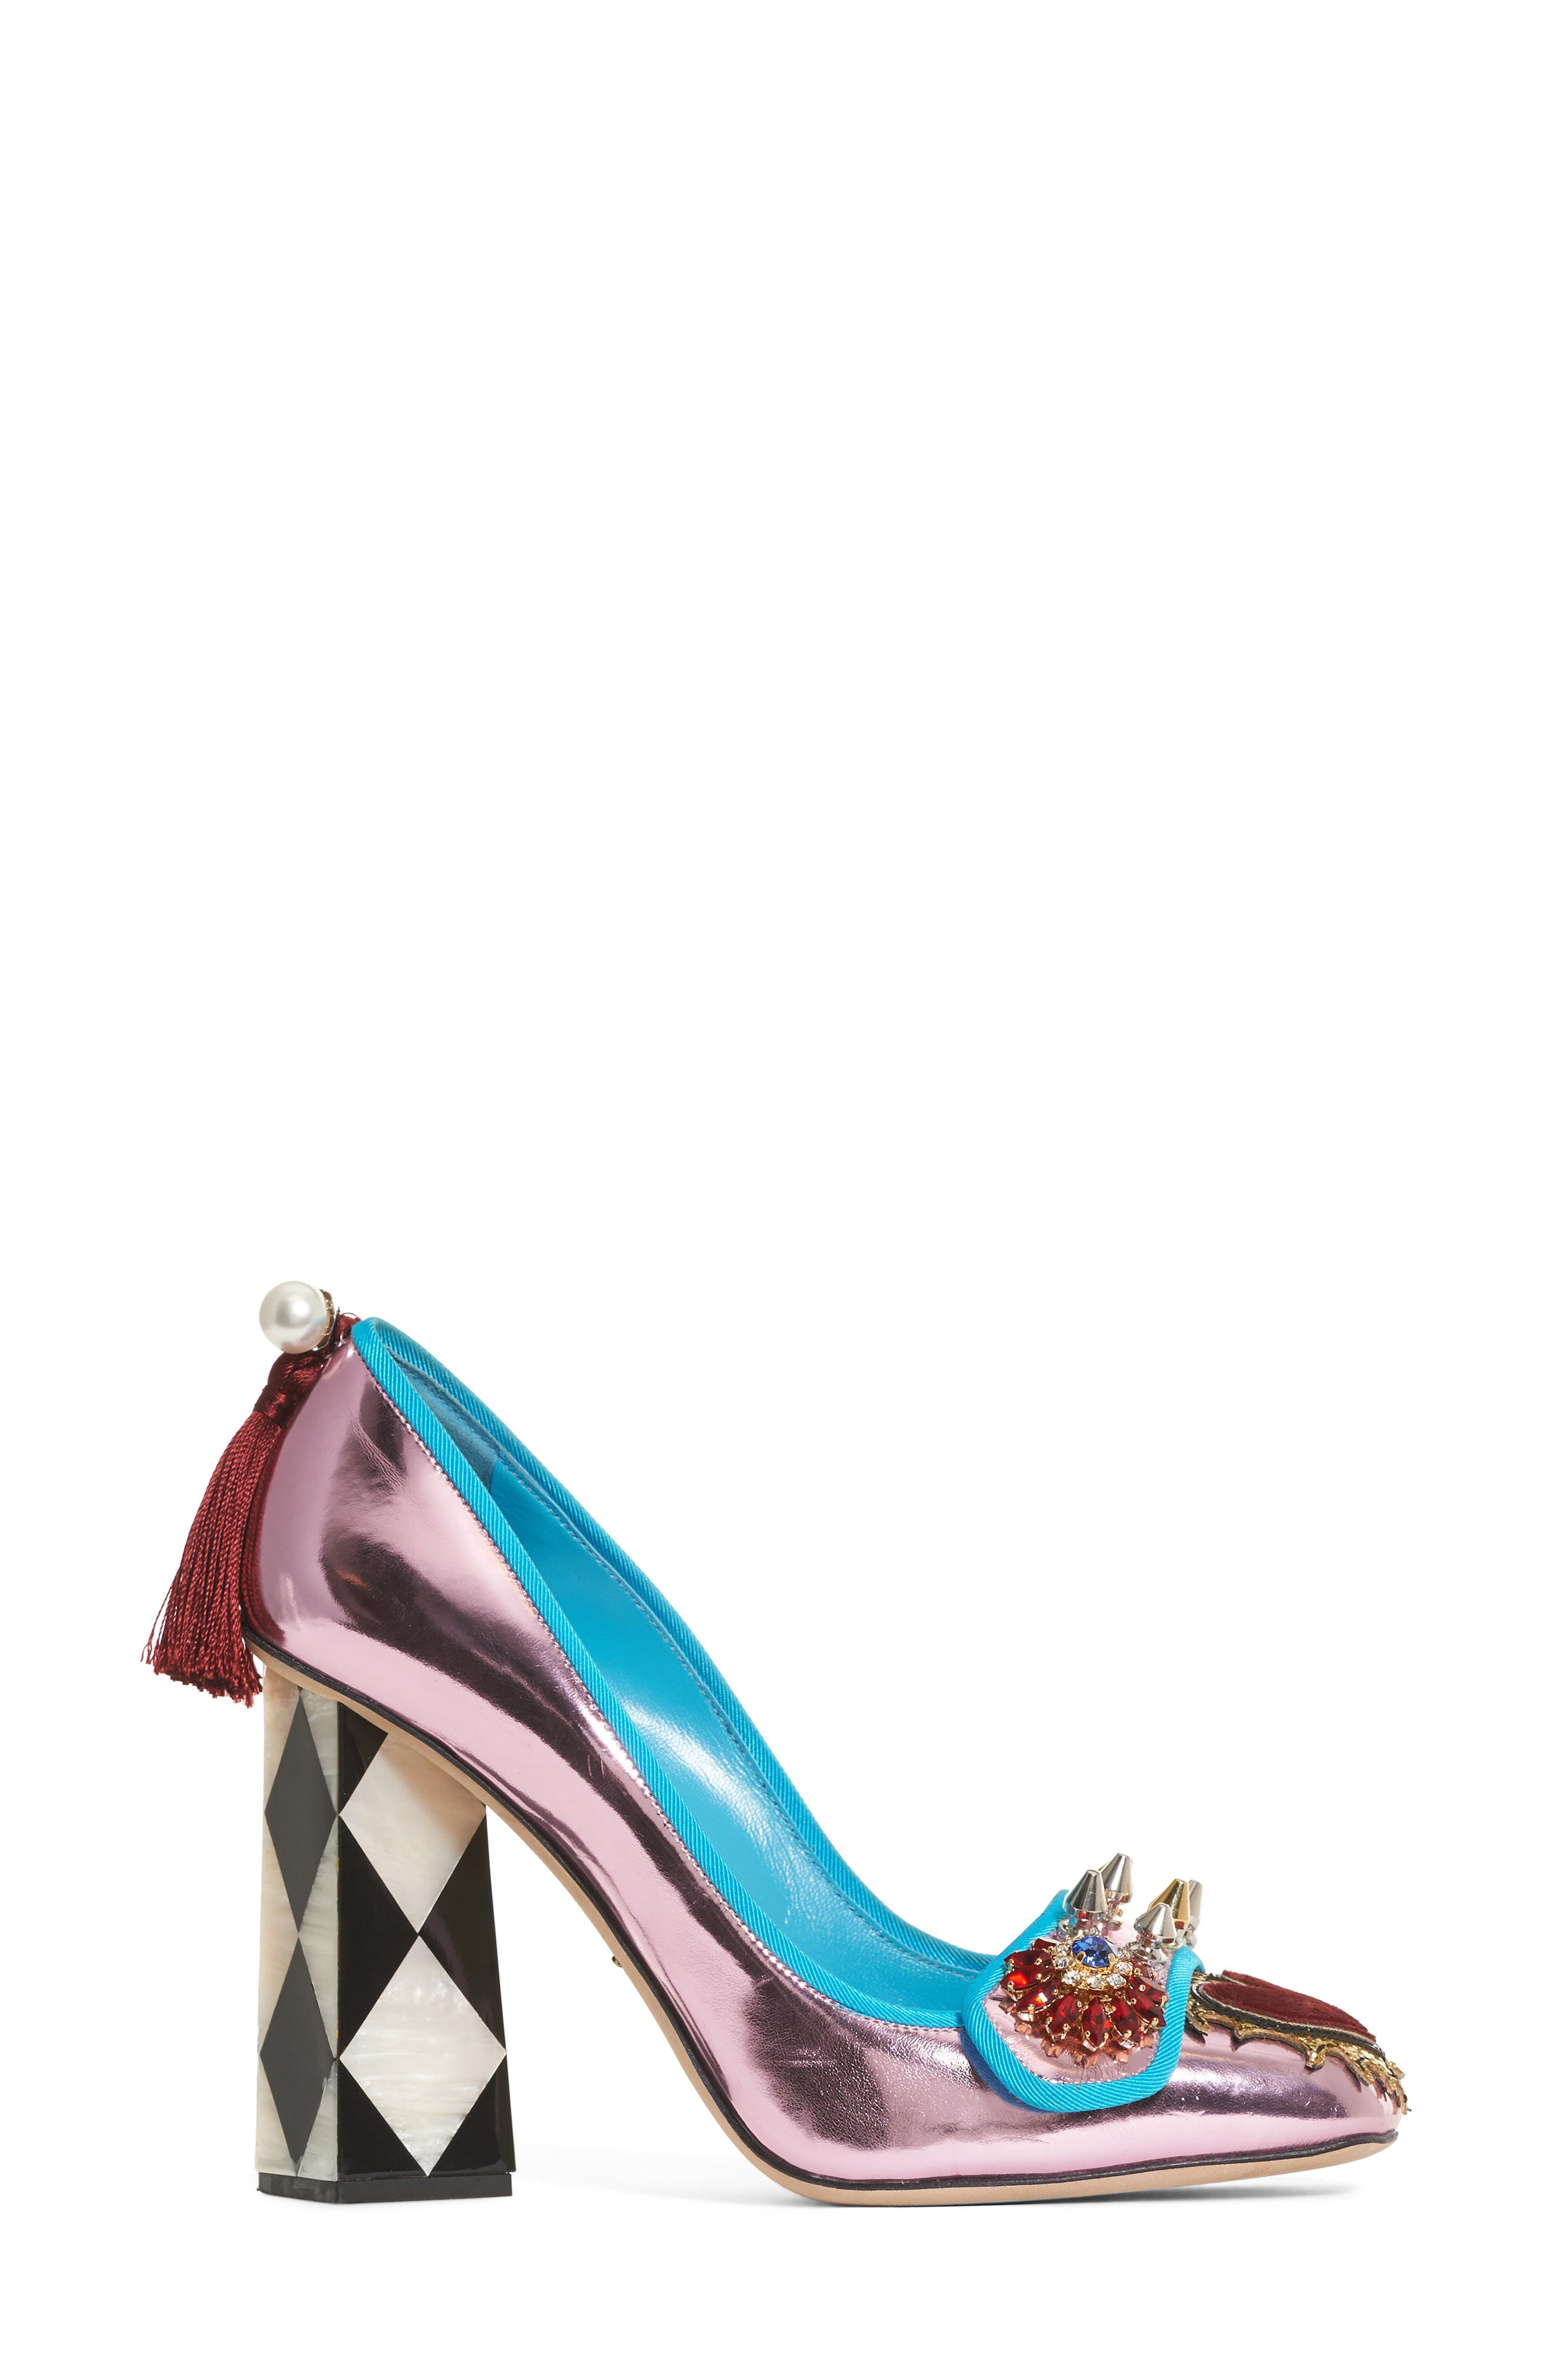 Mother of Pearl Pump,                             Alternate thumbnail 4, color,                             040